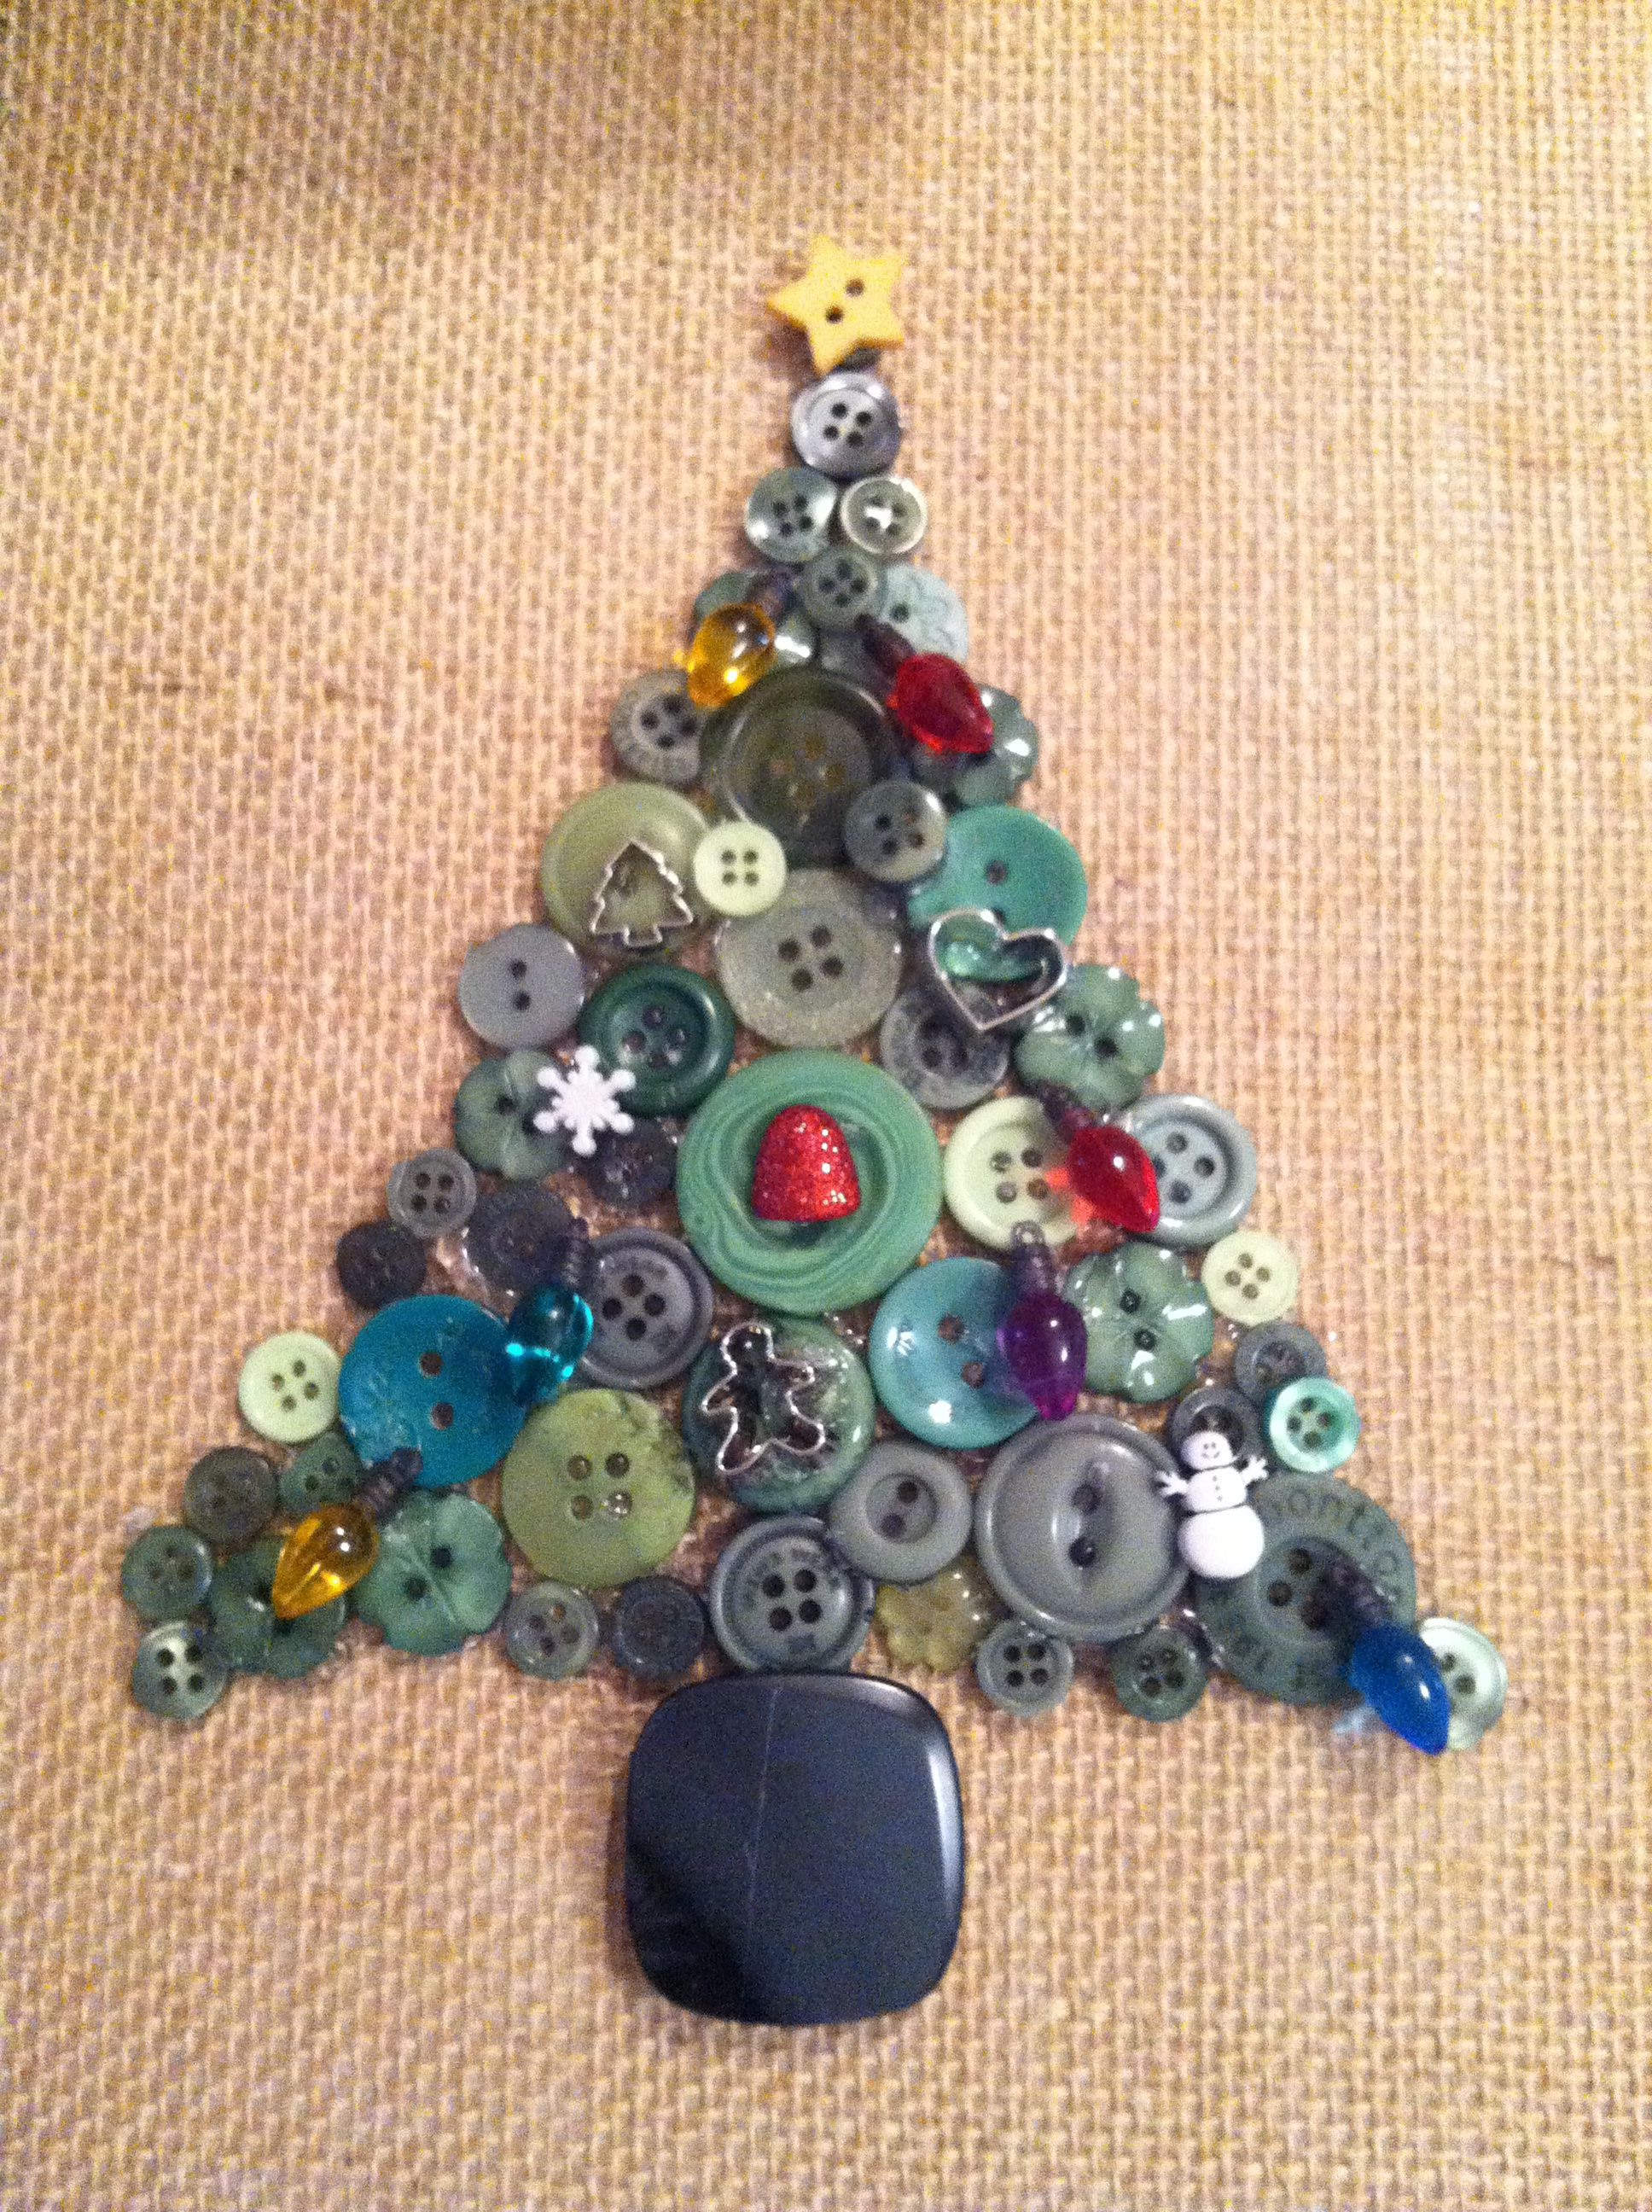 Pin By Yvonne On Button Craft Christmas Button Crafts Christmas Buttons Button Creations